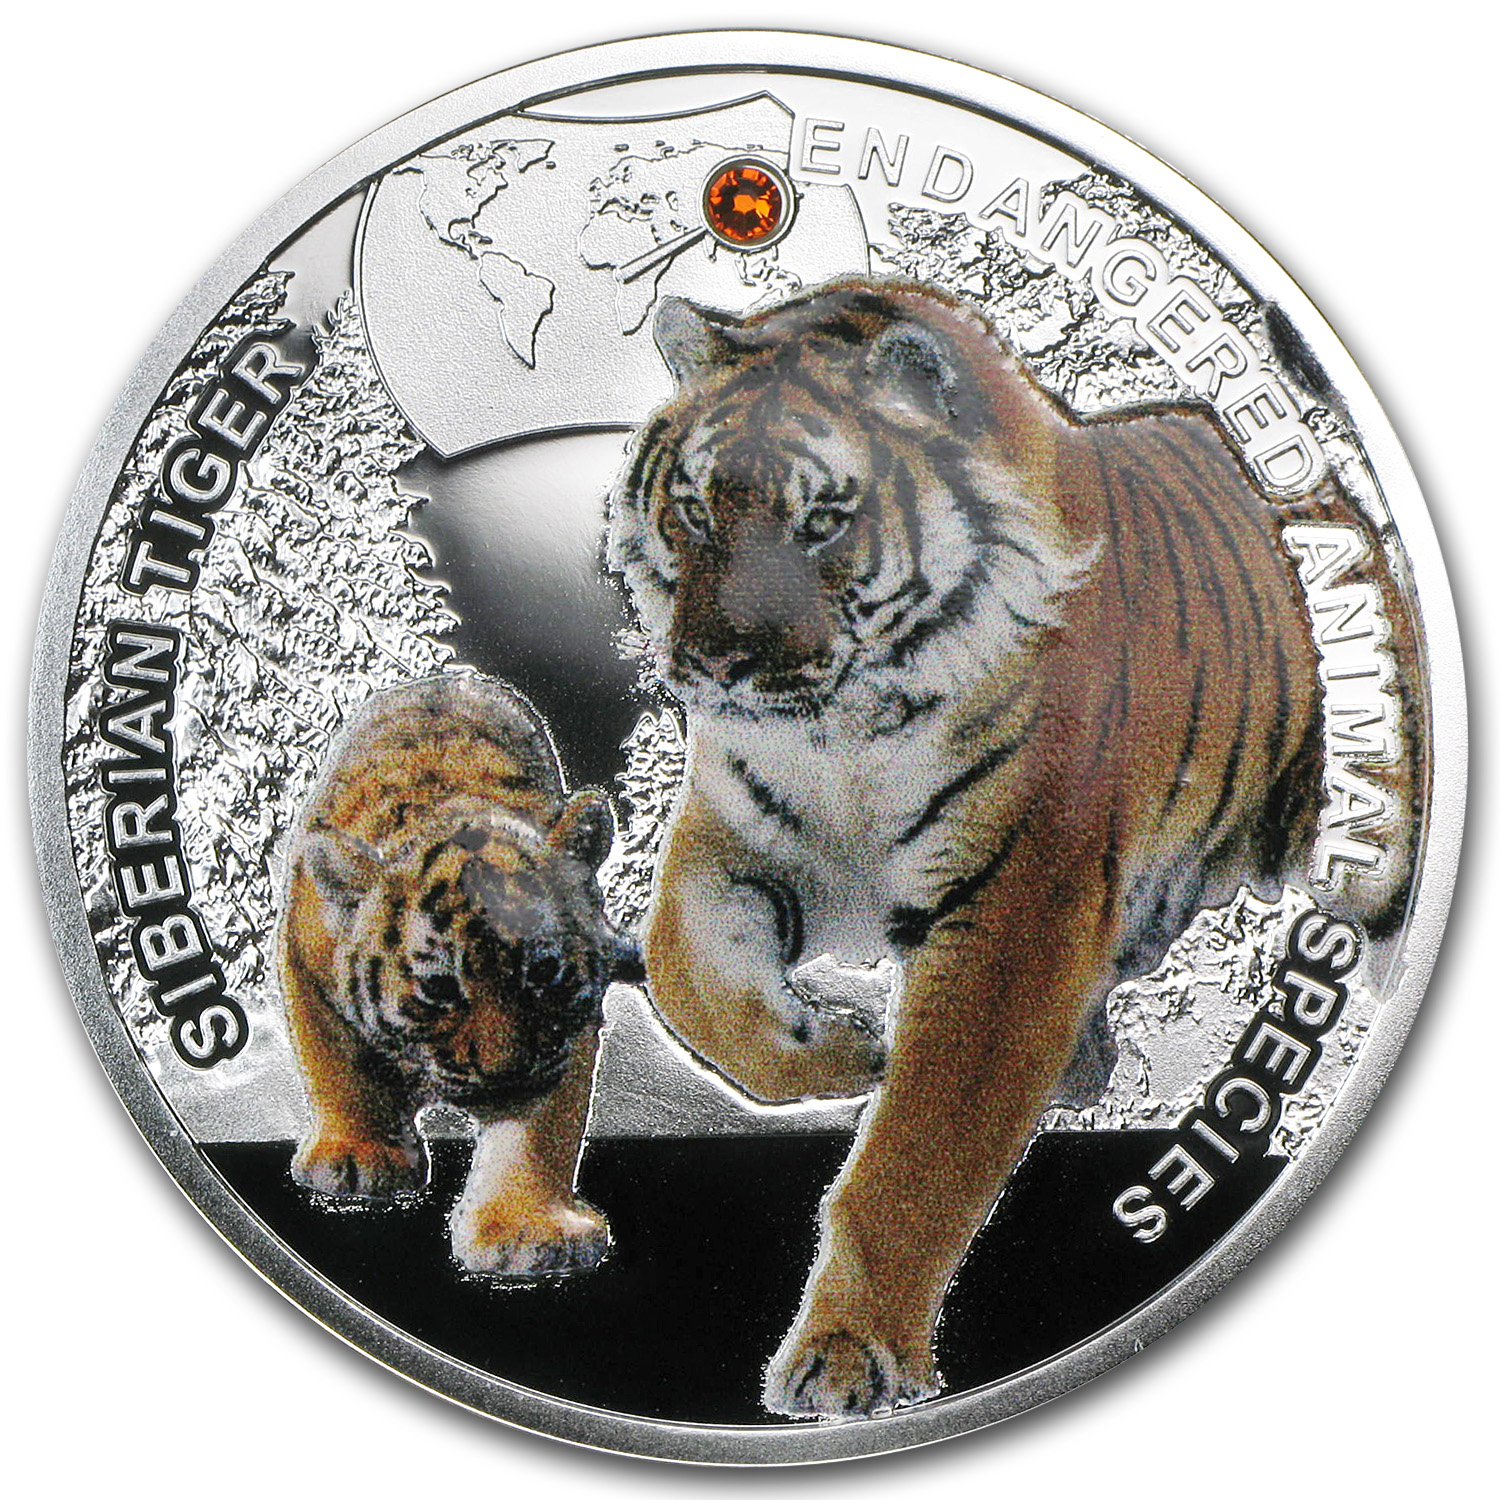 Niue 2014 Proof Silver Endangered Animal Species - Siberian Tiger